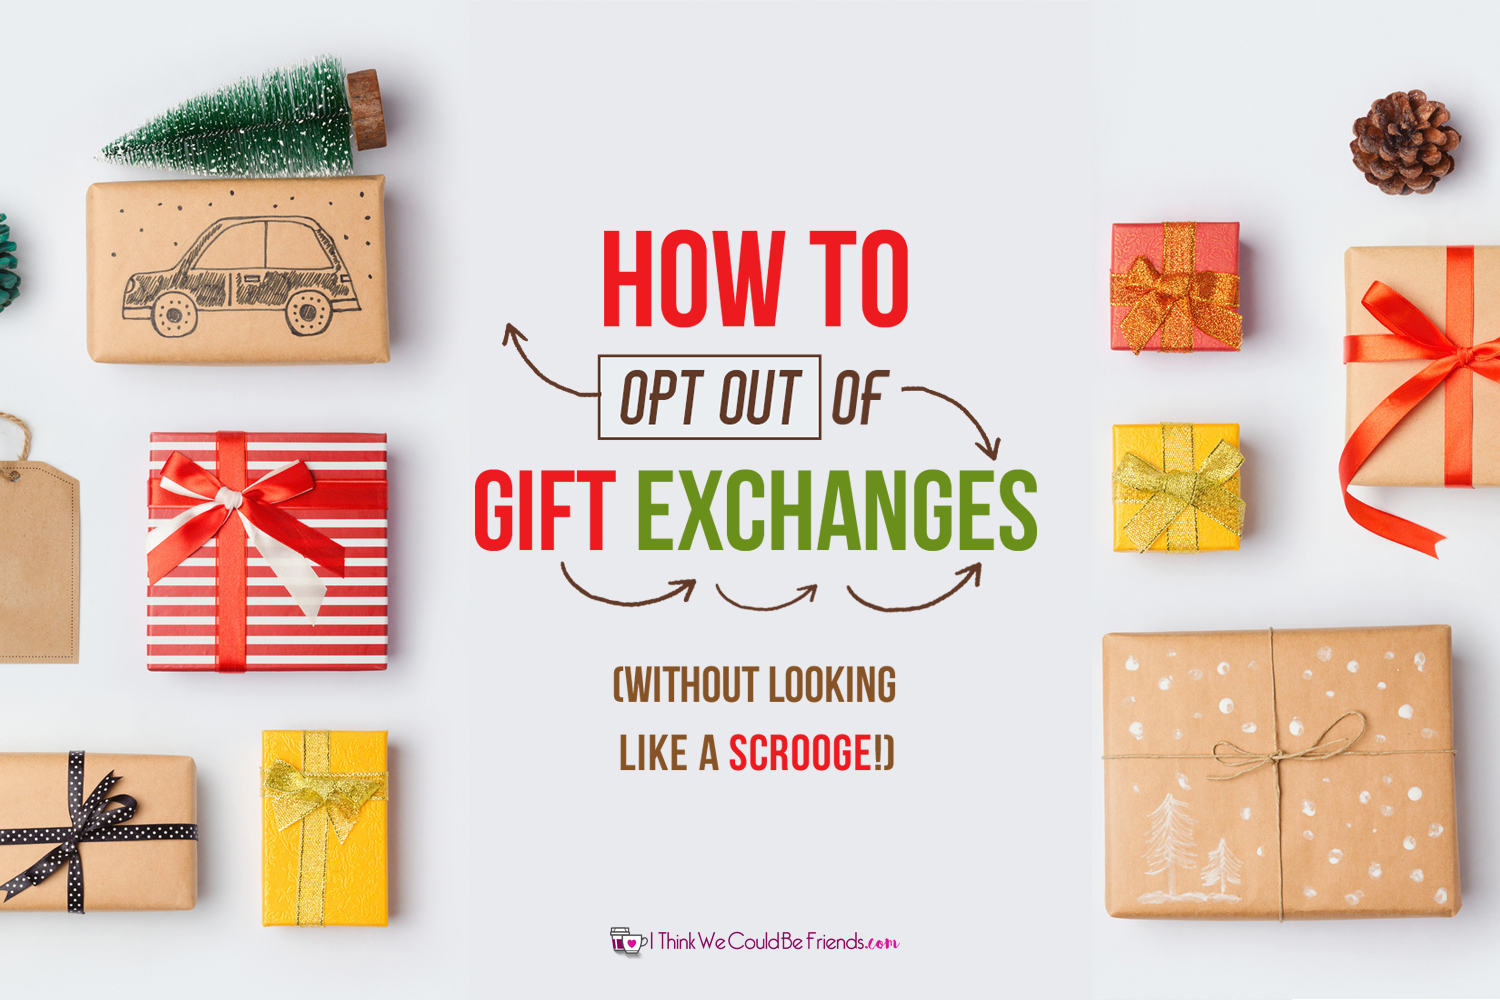 GREAT advice on how to opt out of gift exchanges at work, with friends or family! Reduce STRESS this Christmas- getting out of extra gift exchanges! #Opt #Out #Christmas #Gift #Exchanges